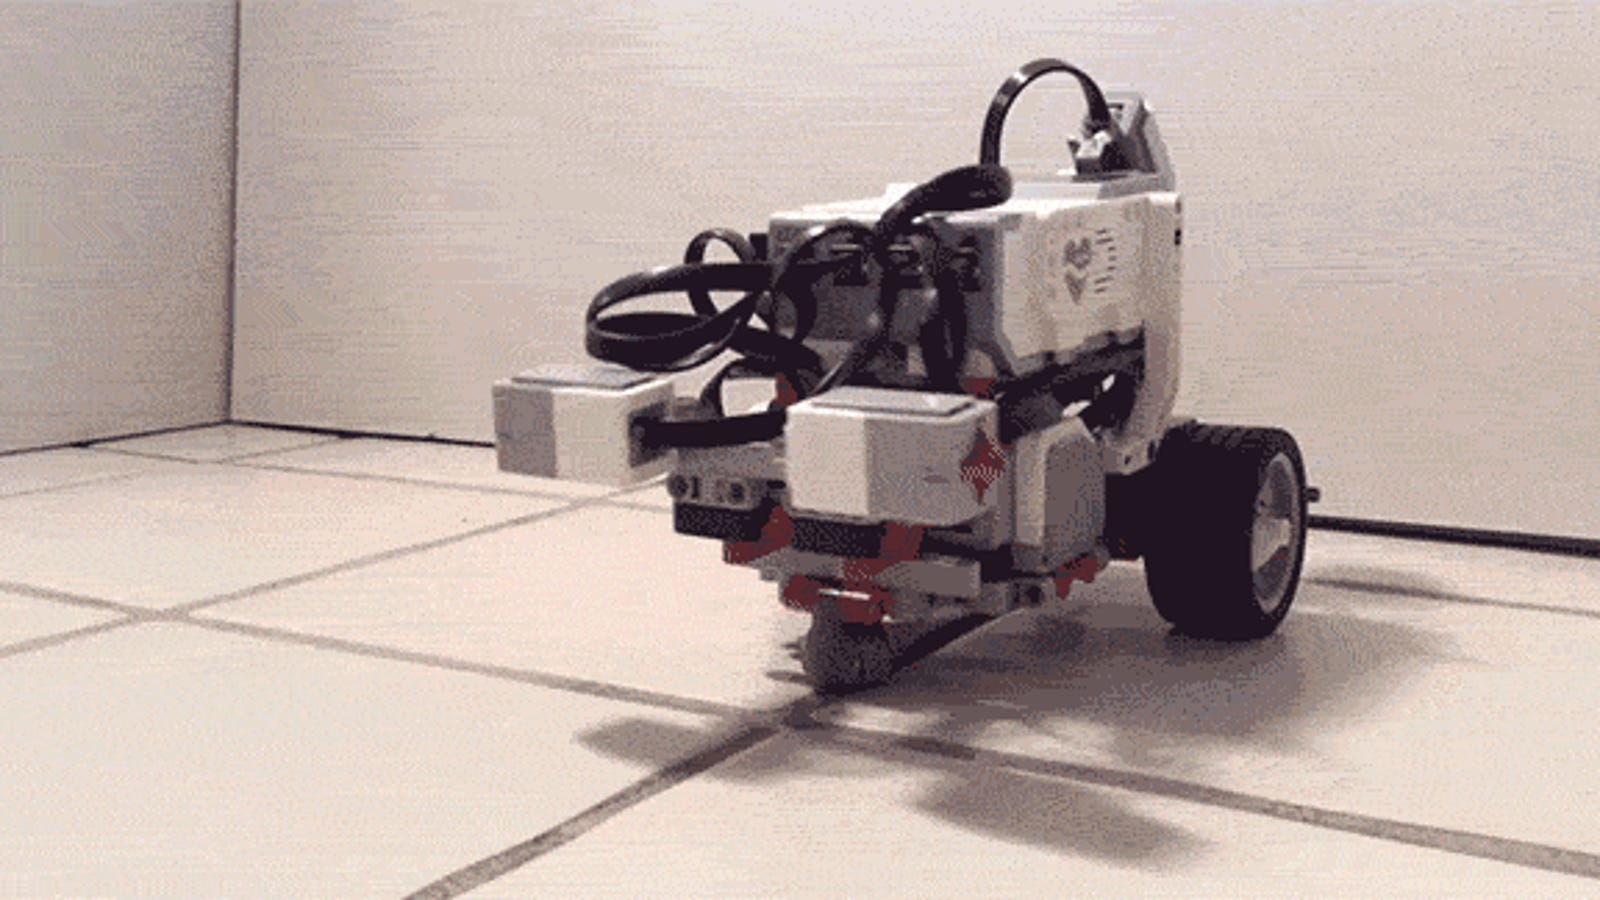 This Robot Thinks It's a Tiny Little Worm